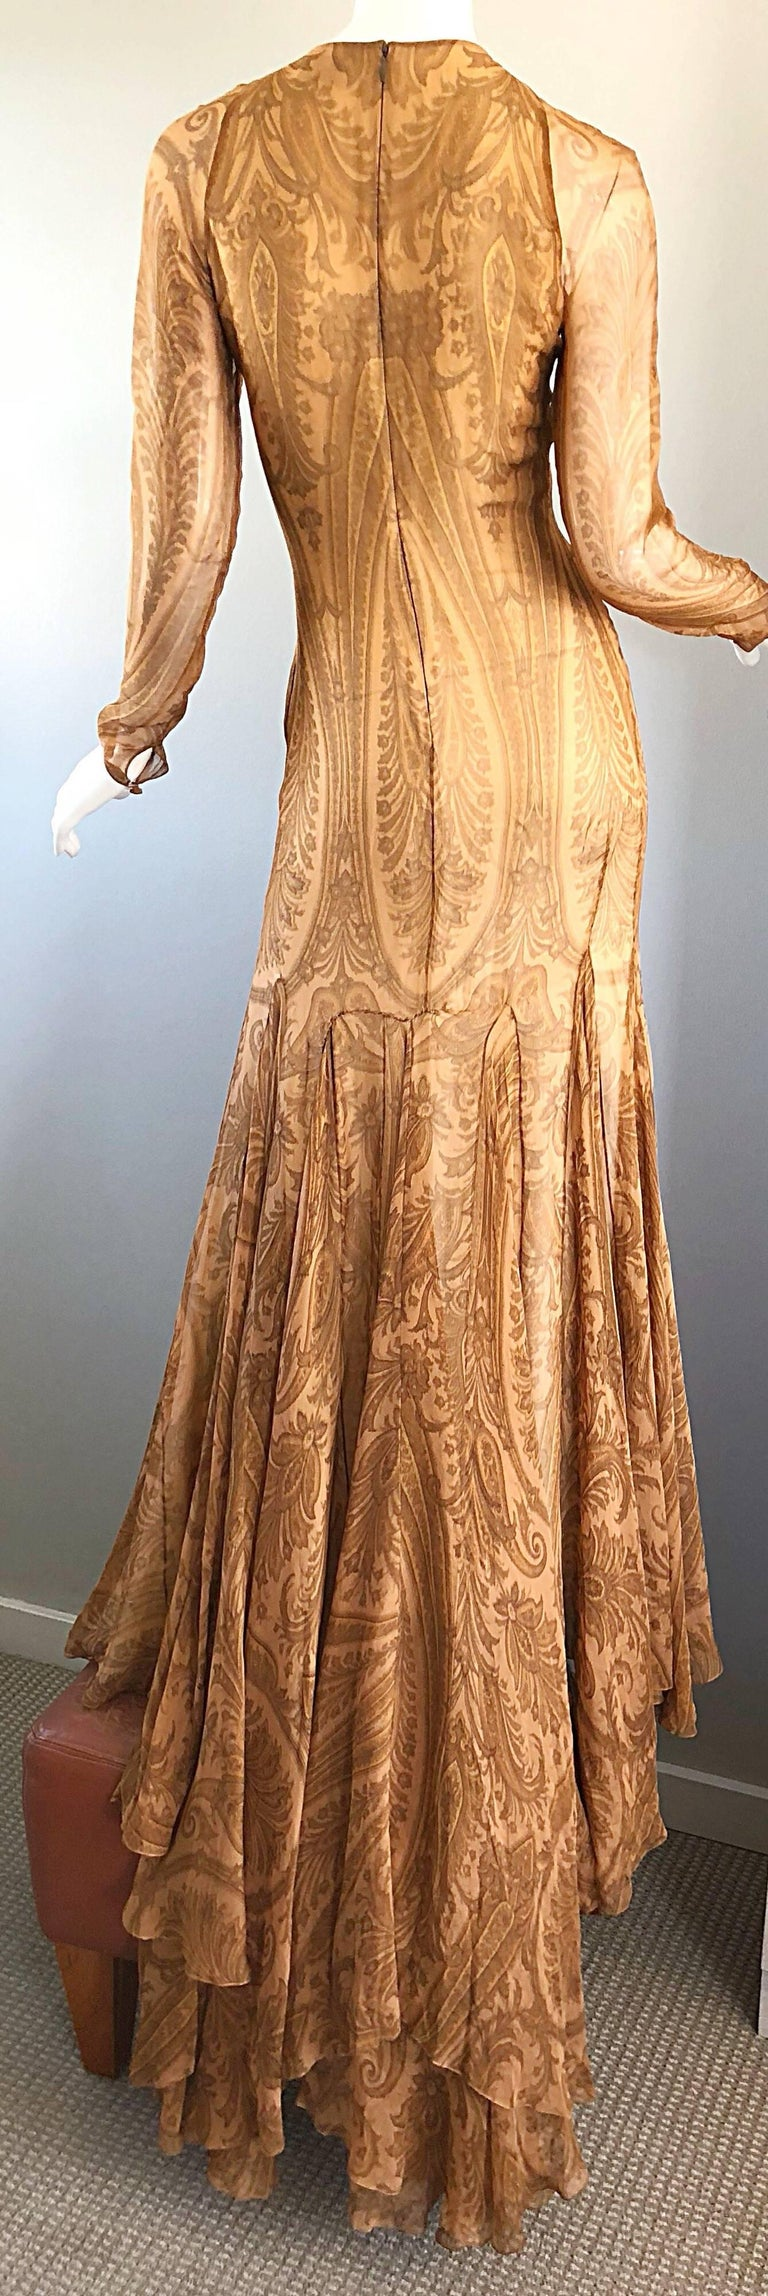 Sensational 1990s Bill Blass Couture Nude Silk Chiffon Paisley Vintage 90s Gown  For Sale 6